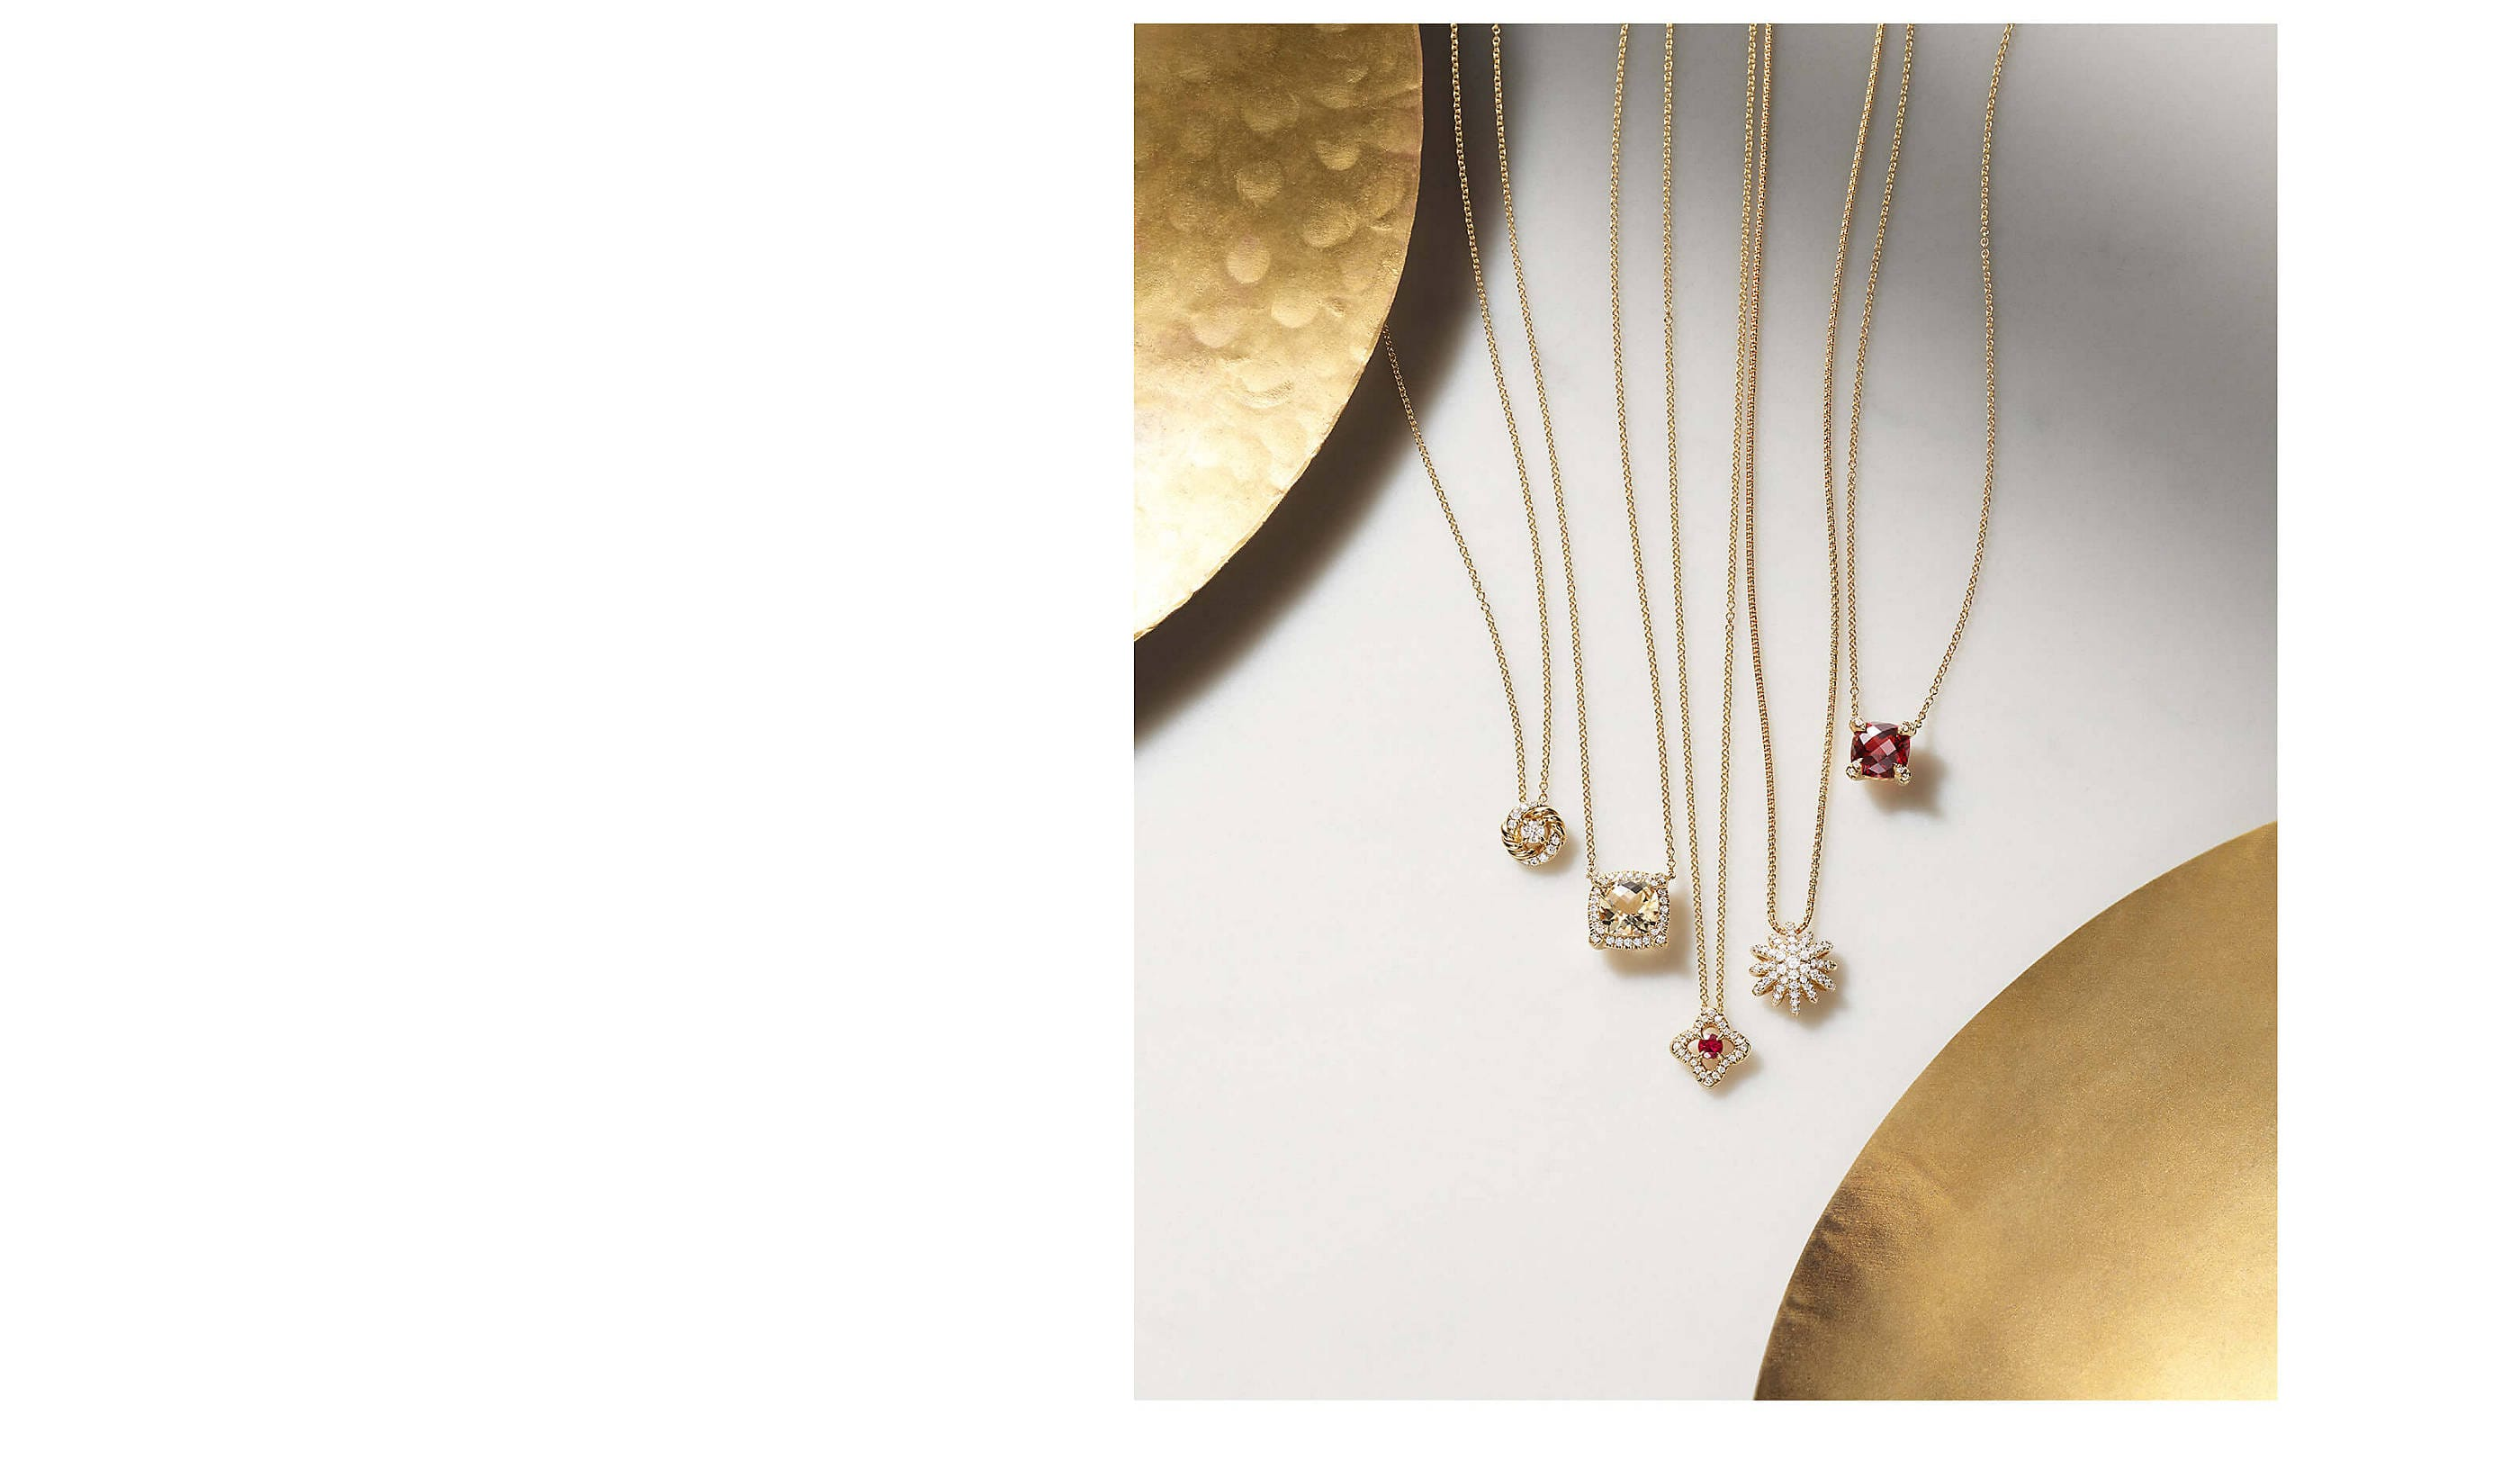 A color photograph shows a row of David Yurman women's pendant necklaces on a white surface in between two golden dishes. The necklaces are crafted from 18K yellow gold with pavé diamonds. Two necklaces have garnet center stones and one necklace has a Champagne citrine center stone.